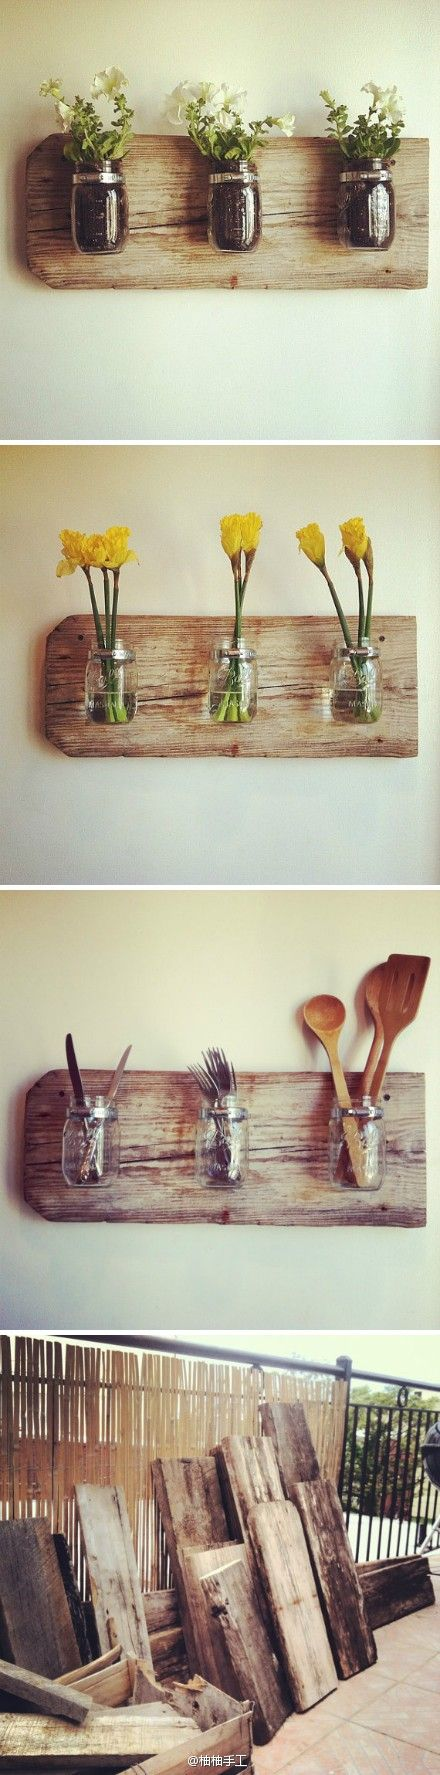 Salvaged wood with mason jar vases/containers. Love it